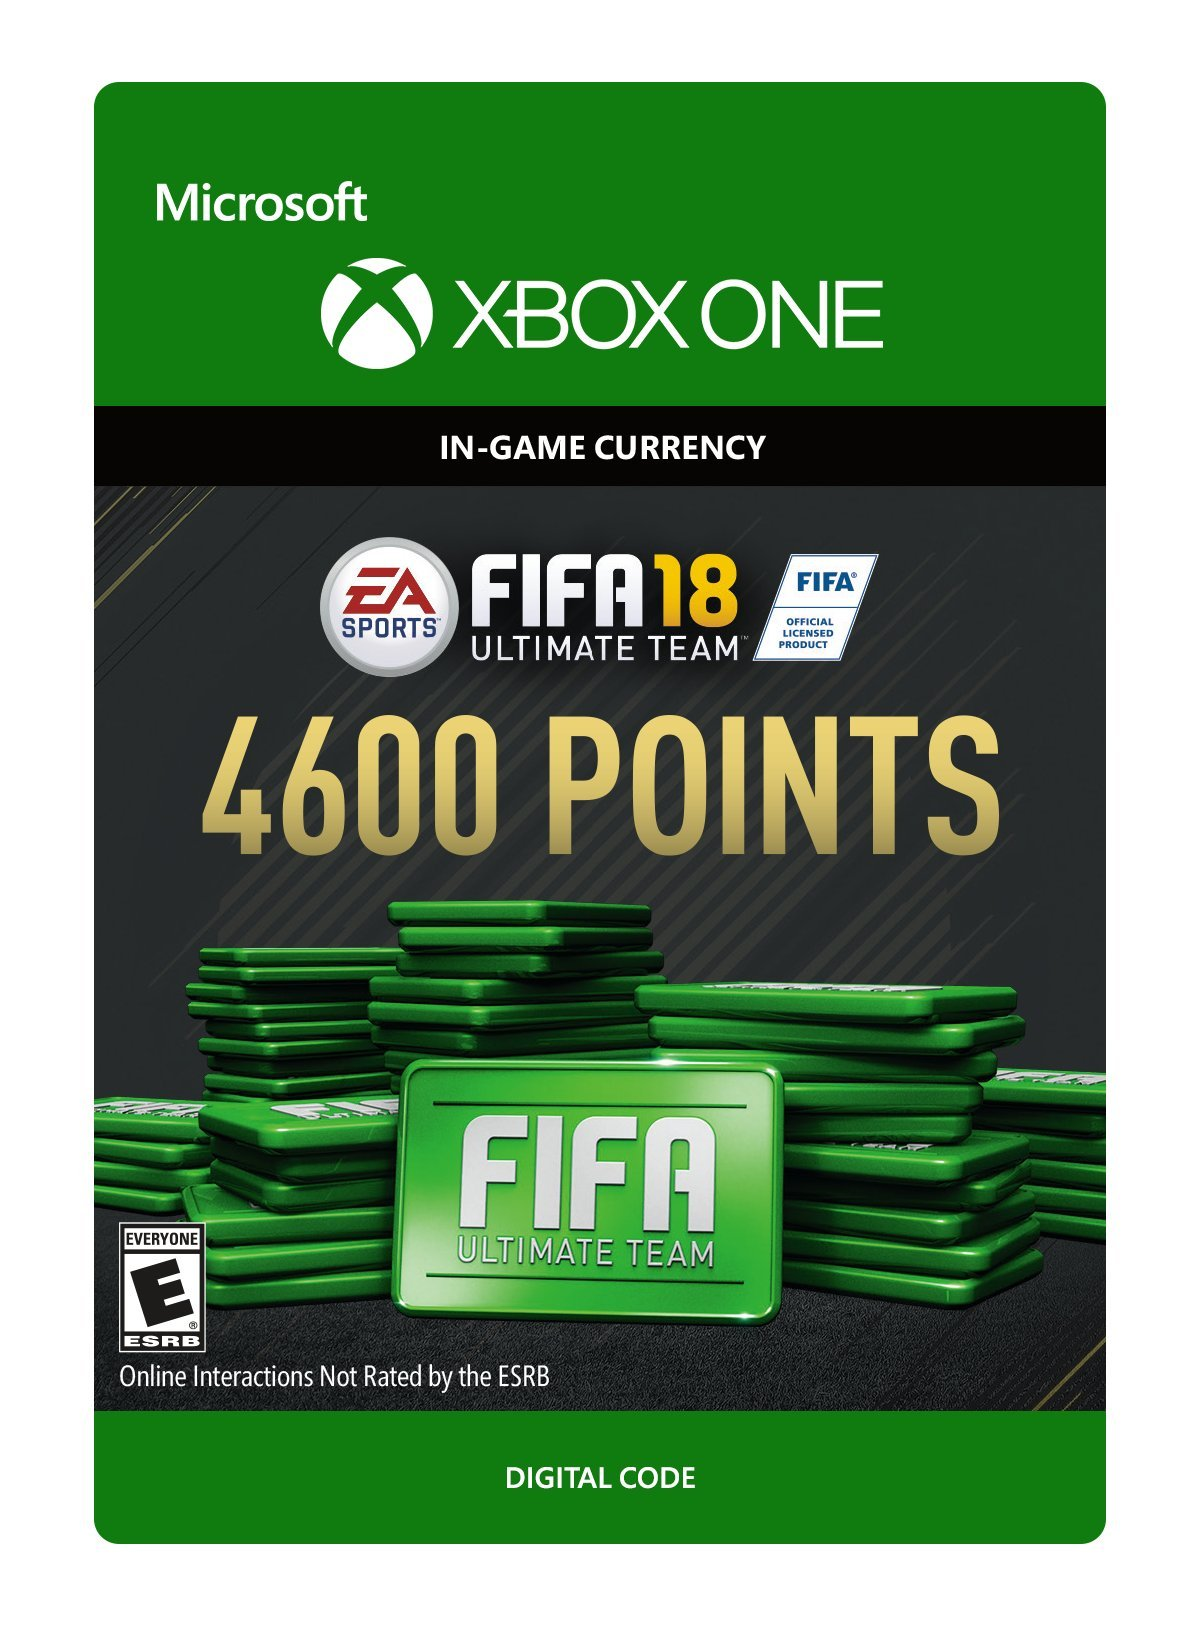 FIFA 18: Ultimate Team FIFA Points 4600 - Xbox One [Digital Code] by Electronic Arts (Image #1)